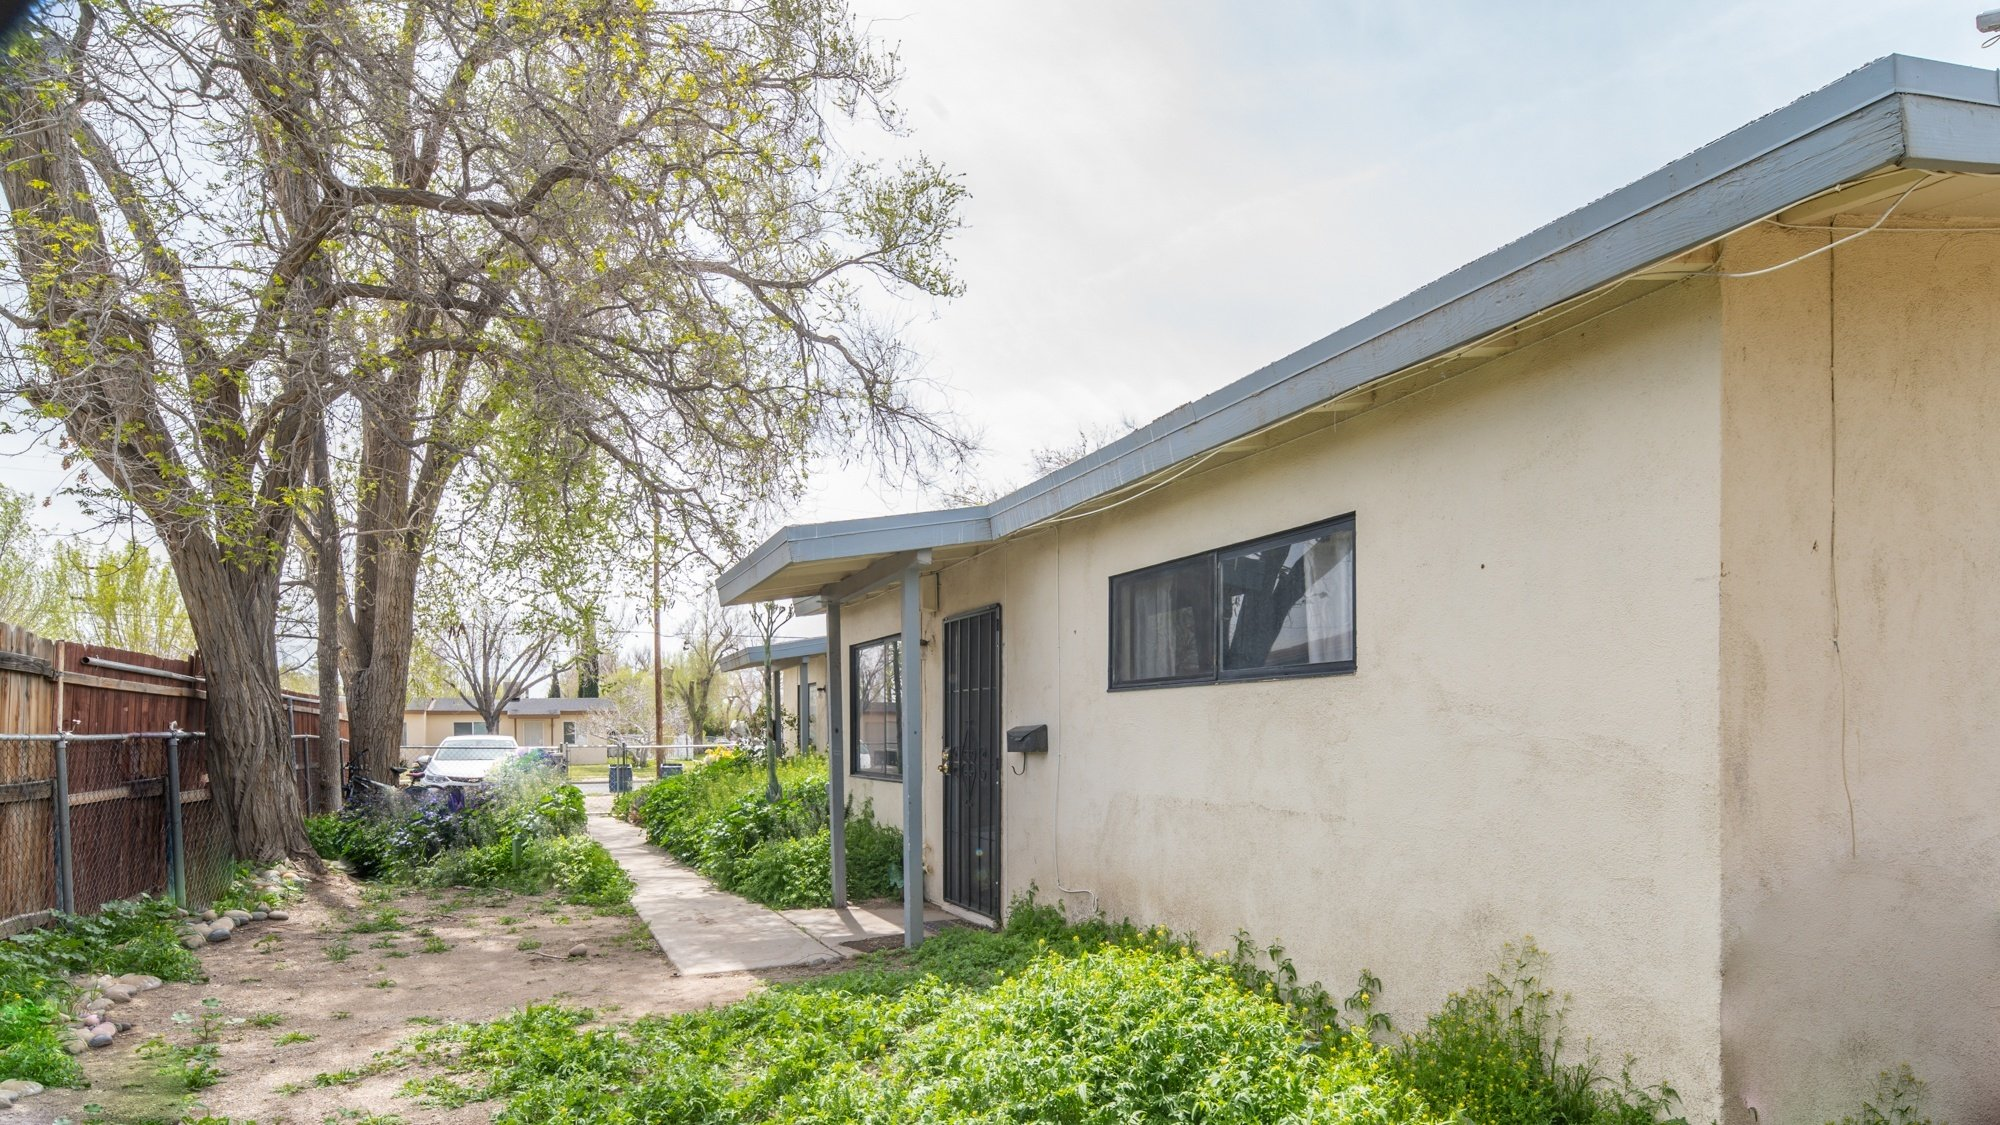 Palmdale, CA best real estate agent 557 - 559 West Avenue H 8, Lancaster, CA 93534 (side yard)